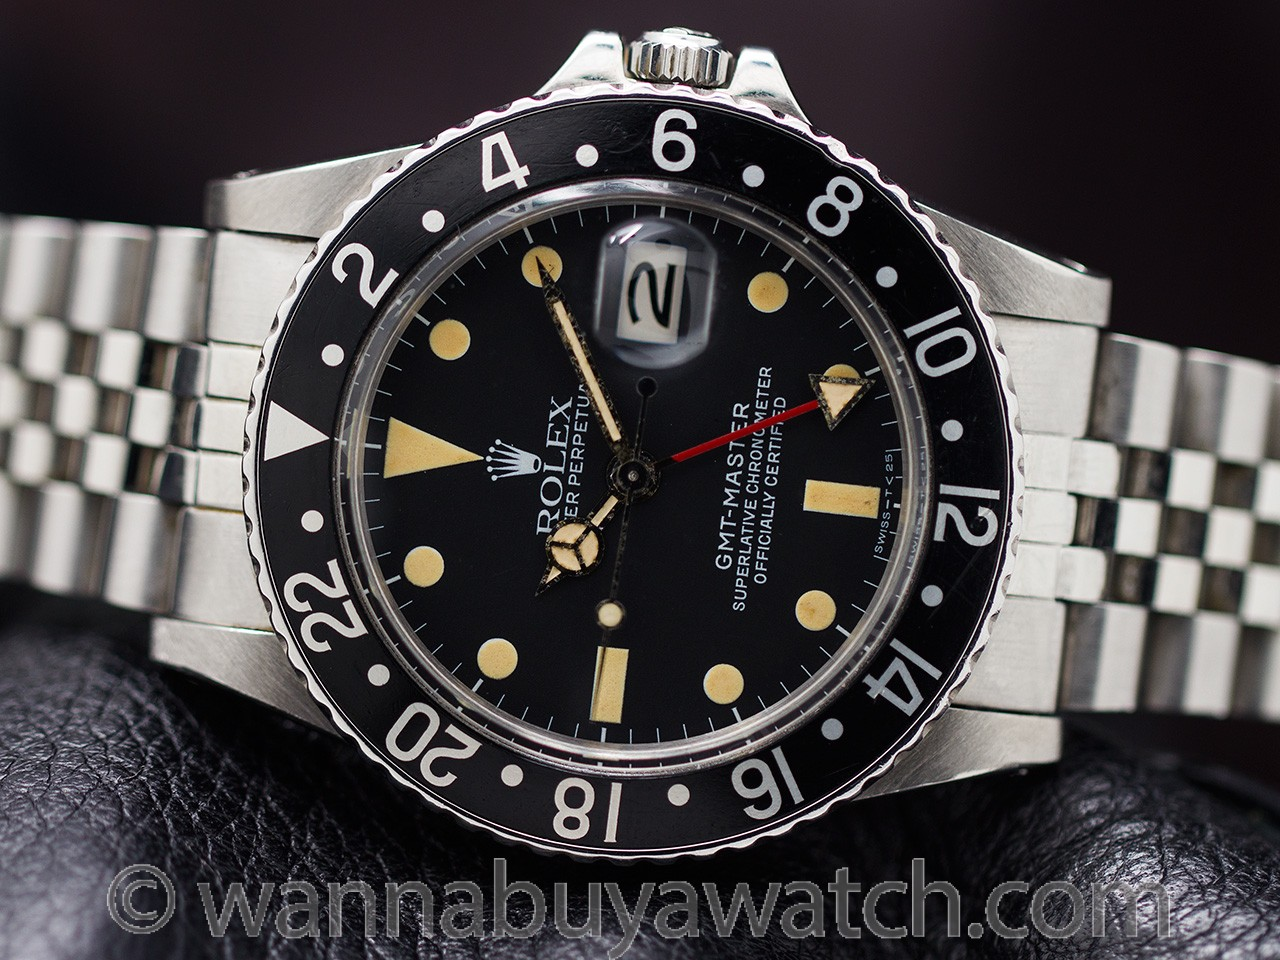 Rolex SS GMT-Master Transitional ref 16750 circa 1981 #'d Hang Tag